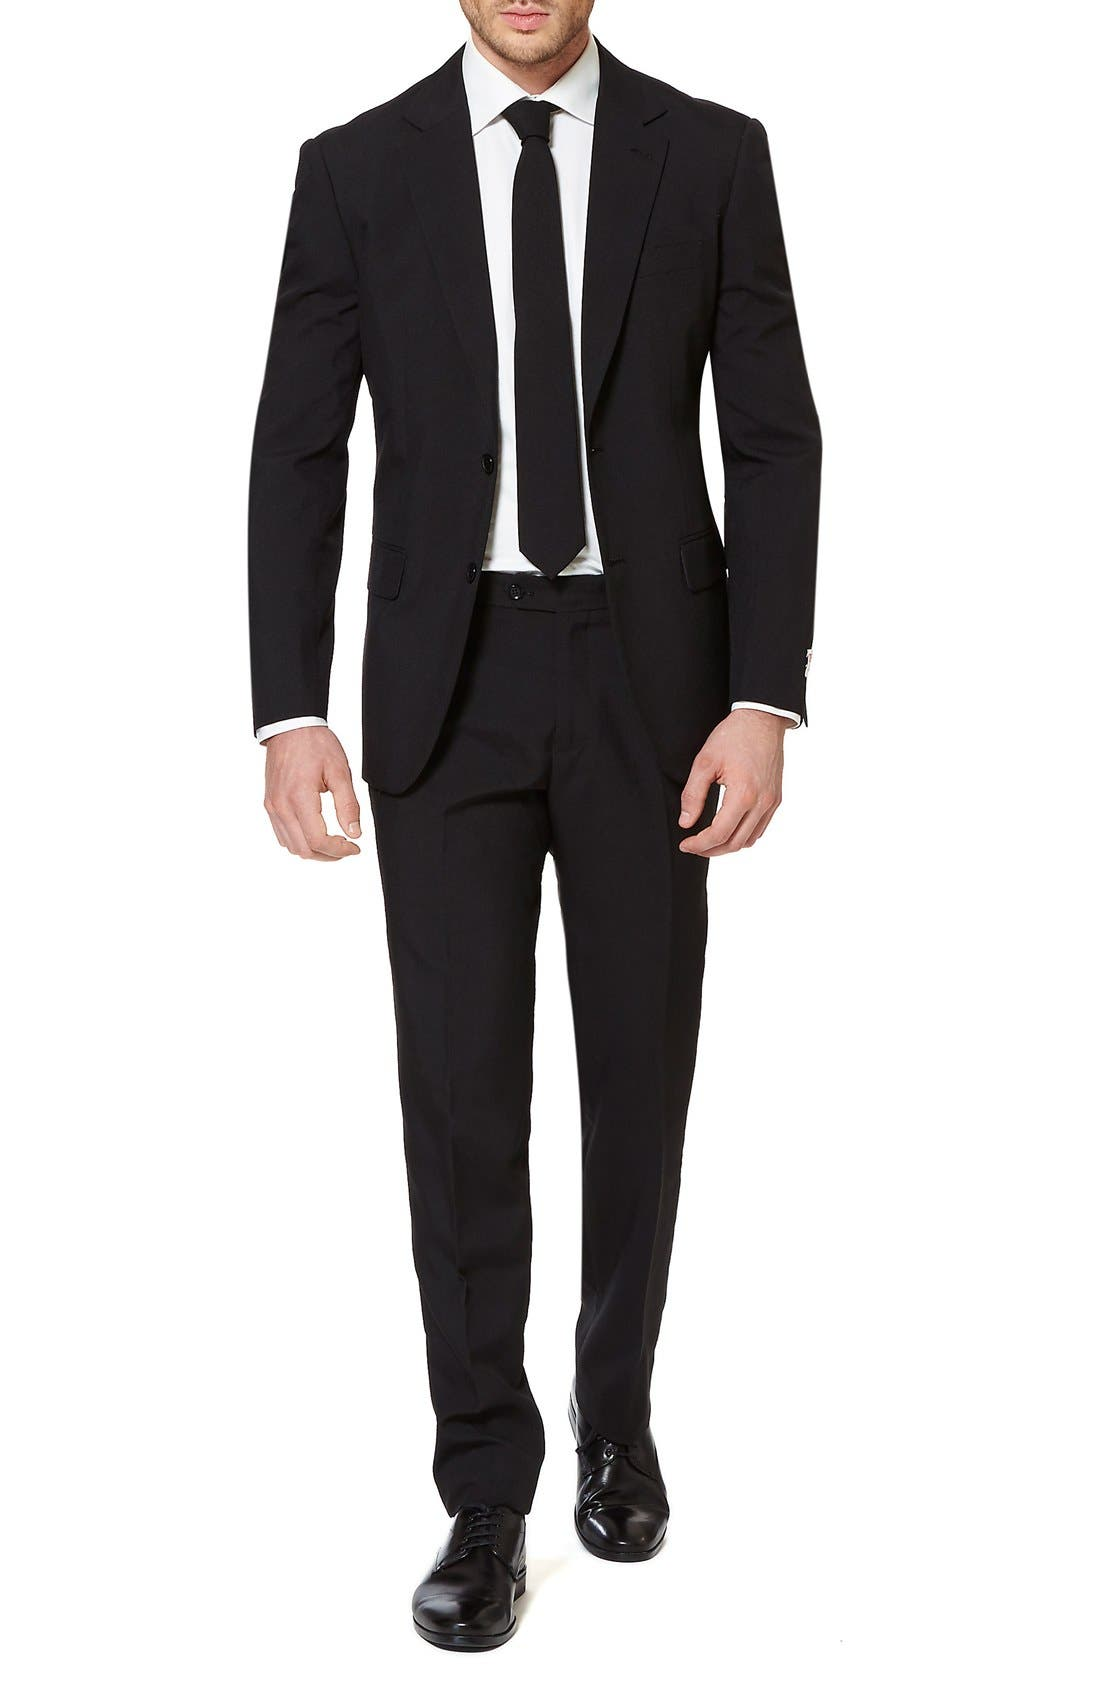 Alternate Image 1 Selected - OppoSuits 'Black Knight' Trim Fit Two-Piece Suit with Tie